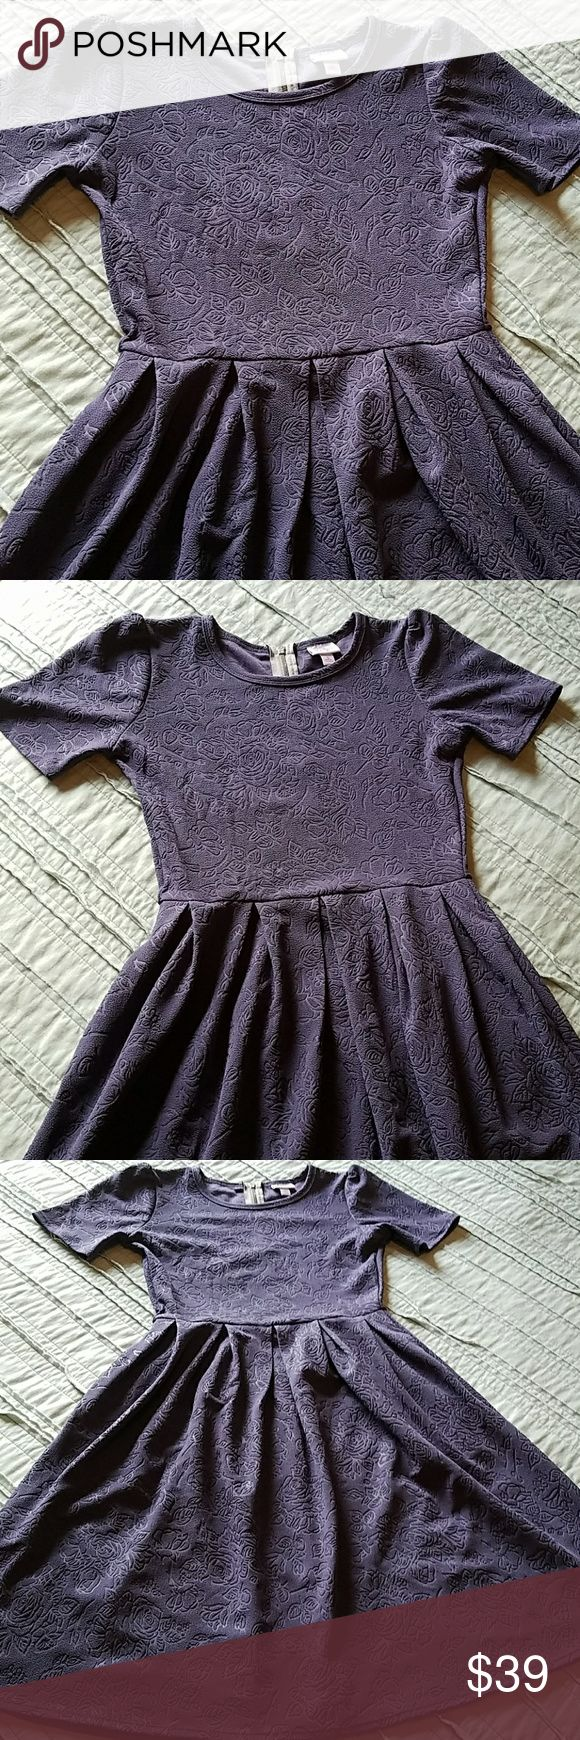 Lularoe Amelia Rose Embossed Dress in Purple This is a gorgeous Amelia in fantastic condition!  Only worn a few times so grab this up at a discount!  Dress has a gorgeous pleated design and the rose design is embossed as part of the fabric.  I wish I could keep this dress, but it is just too small for me.  Don't forget it has pockets! 😍😍😍 LuLaRoe Dresses